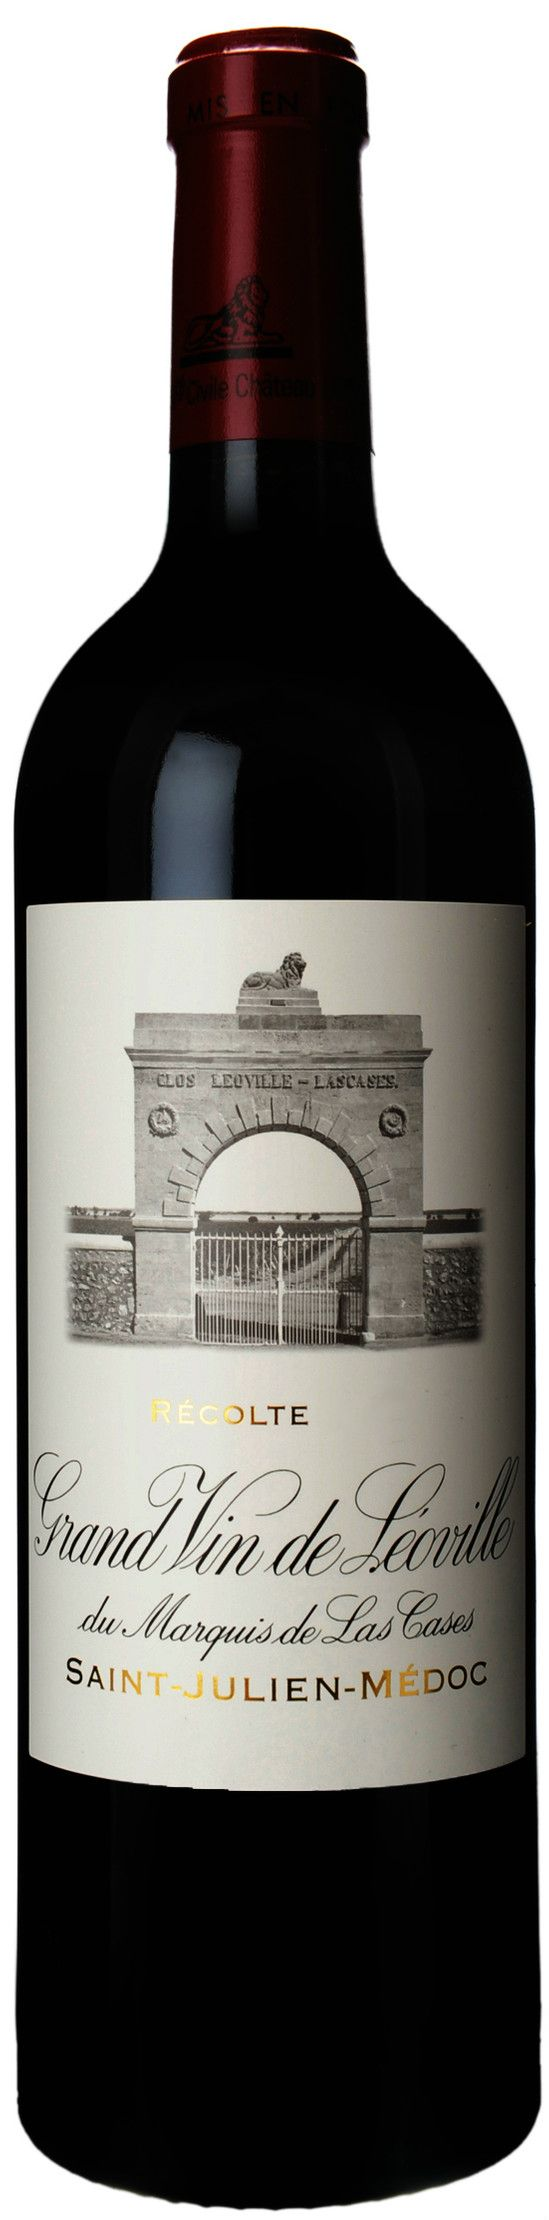 Chateau Leoville Las Cases, 2013